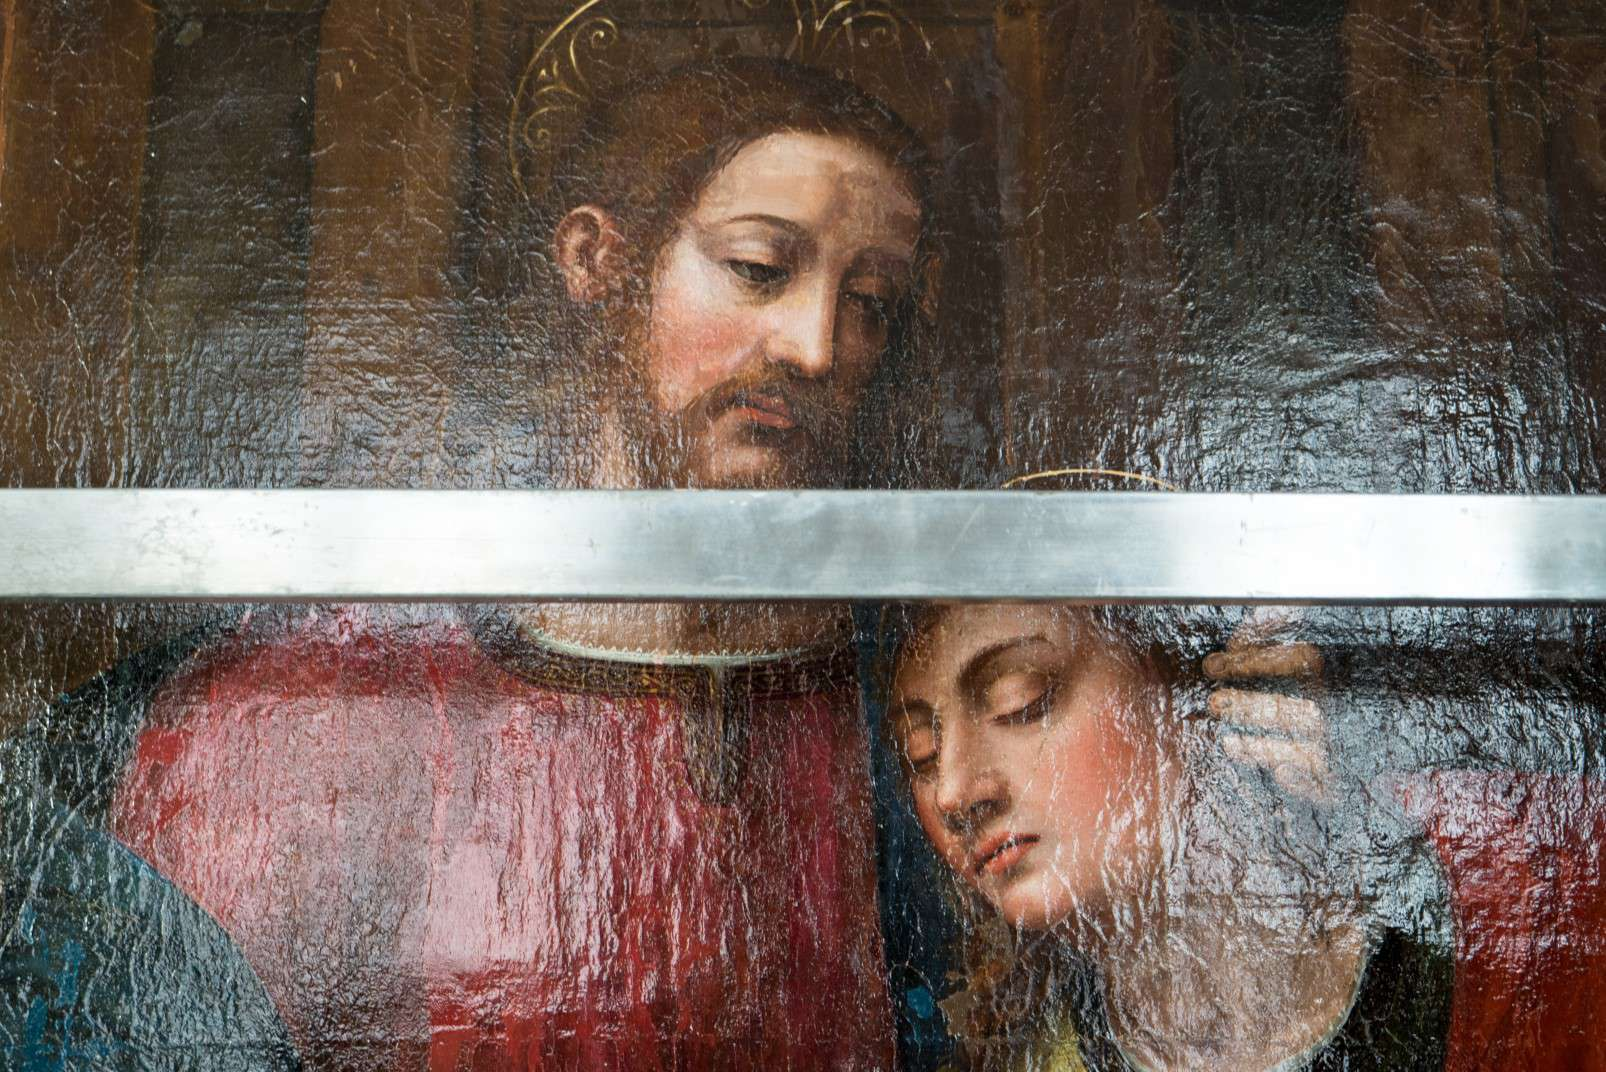 Last Supper by Plautilla Nelli - Adopt an Apostle - Detail of Christ and Saint John phase II